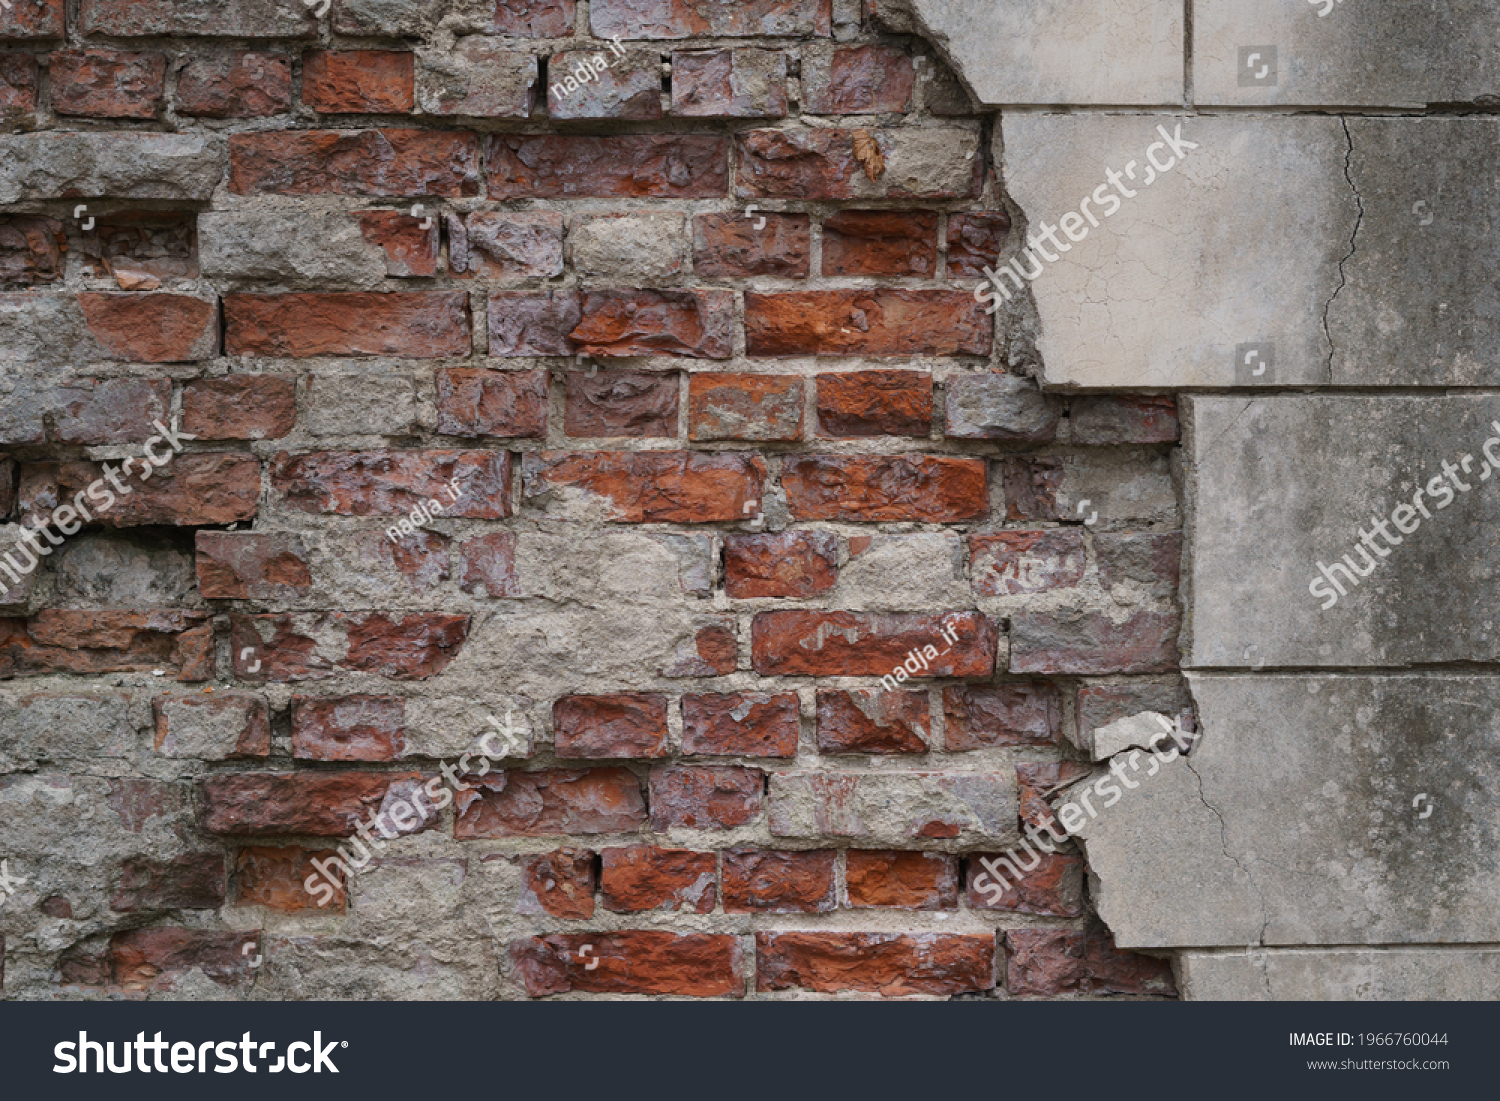 Brick texture for the background. High quality photo #1966760044